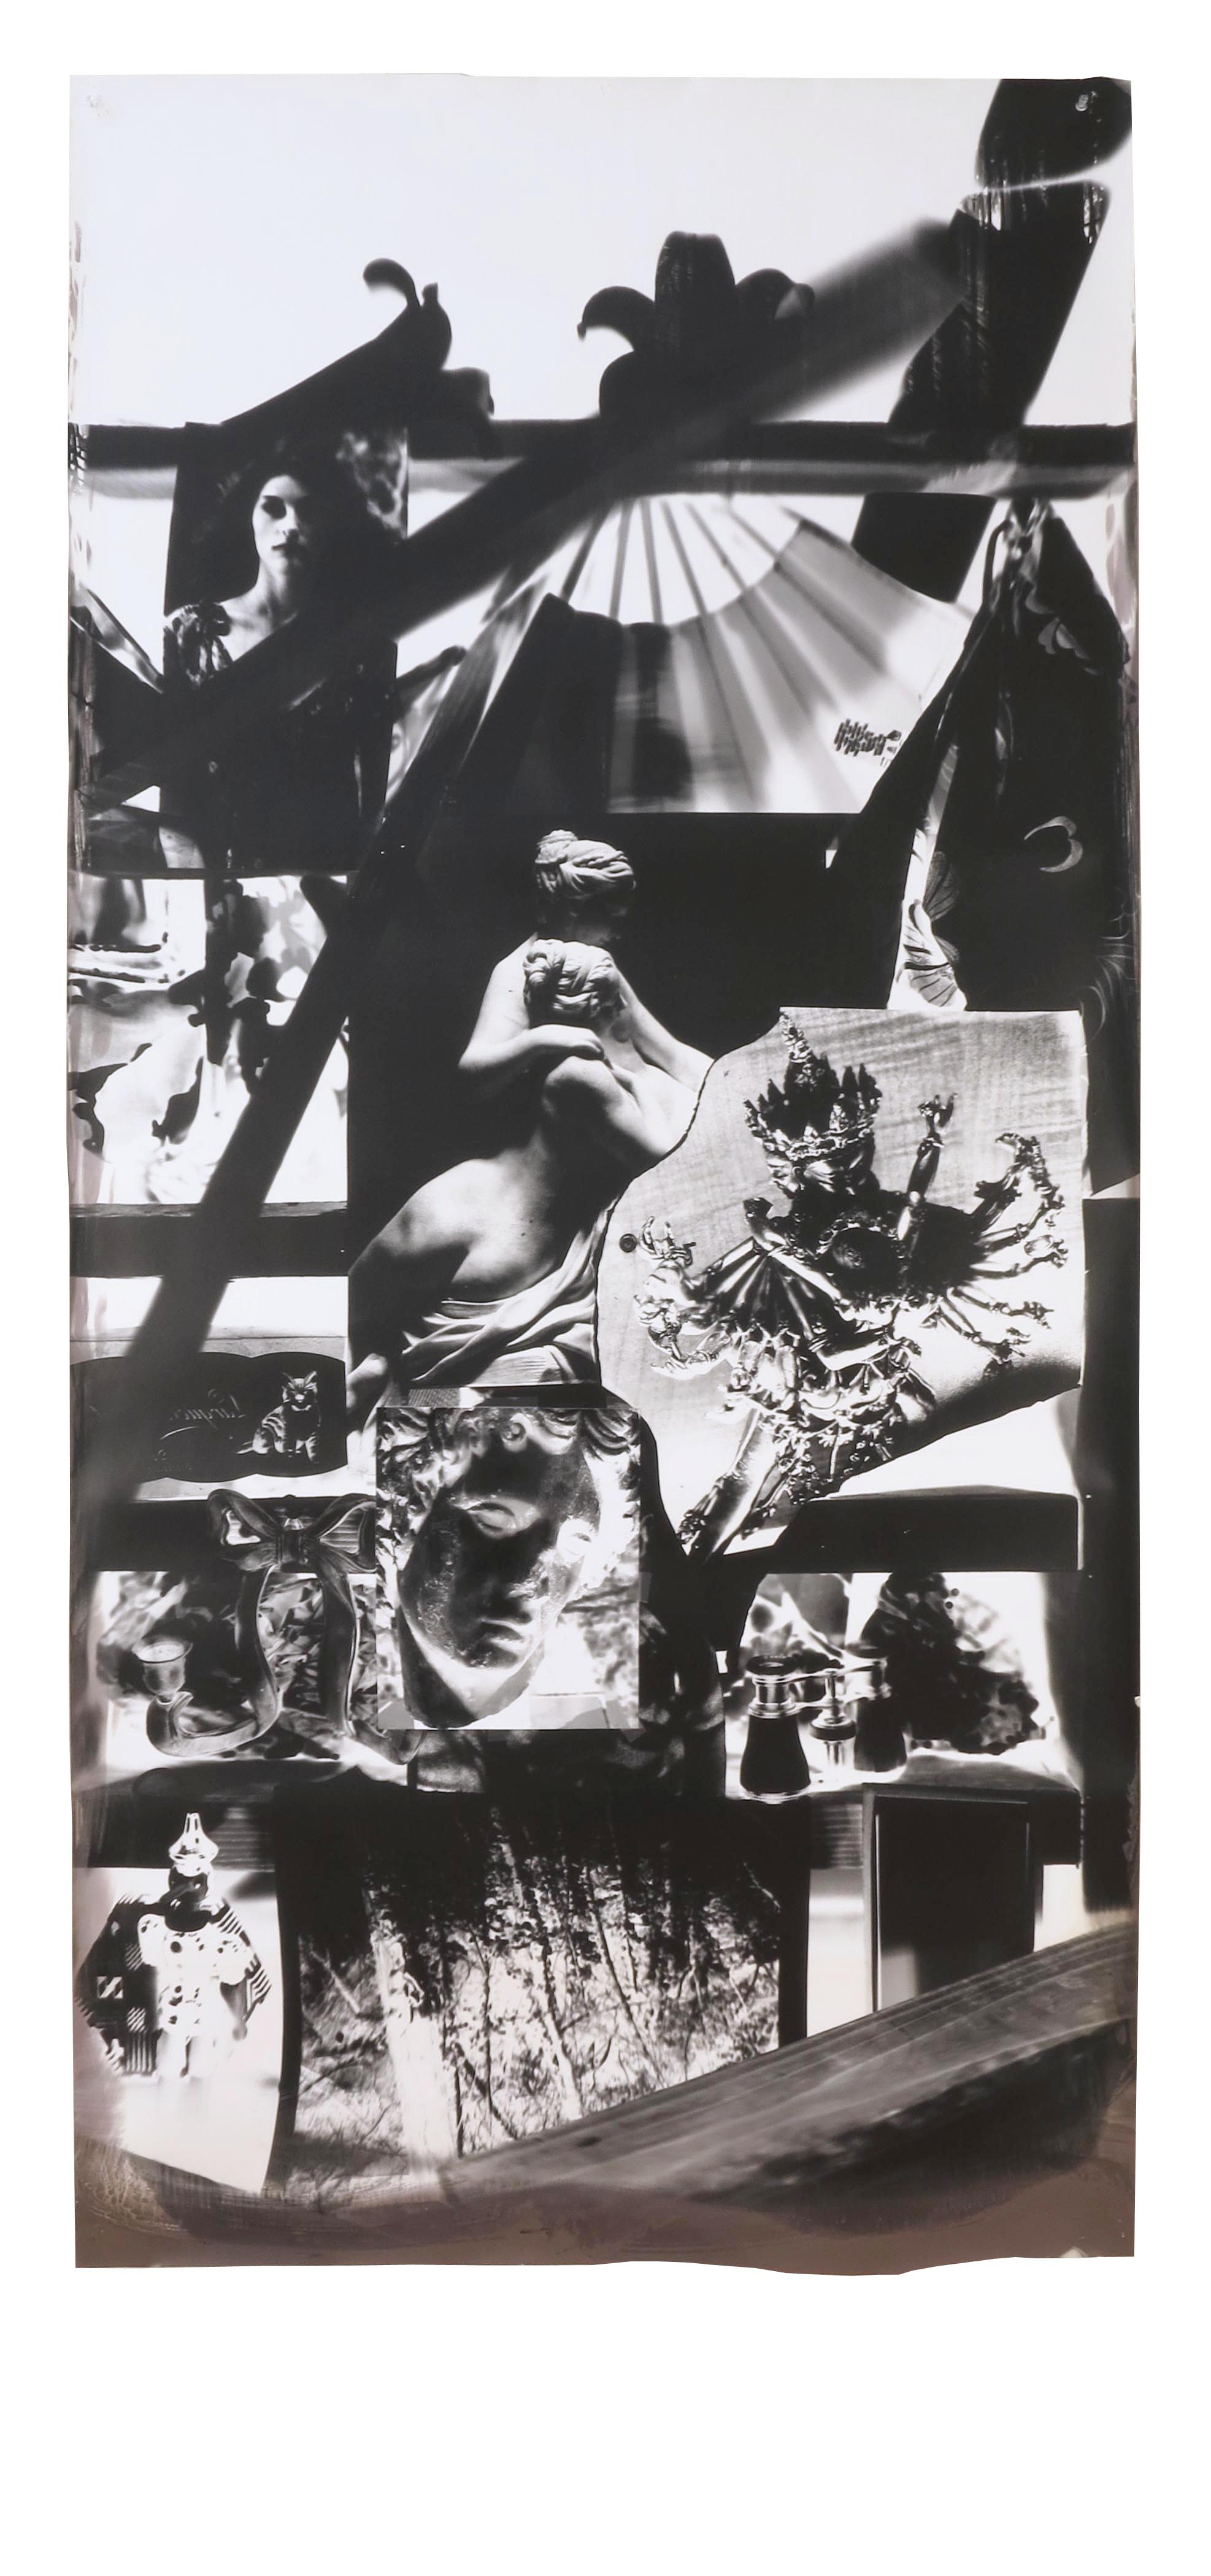 Sevres Figures and Tibetan Sculpture  2004  gelatin silver print  82 x 40 inches